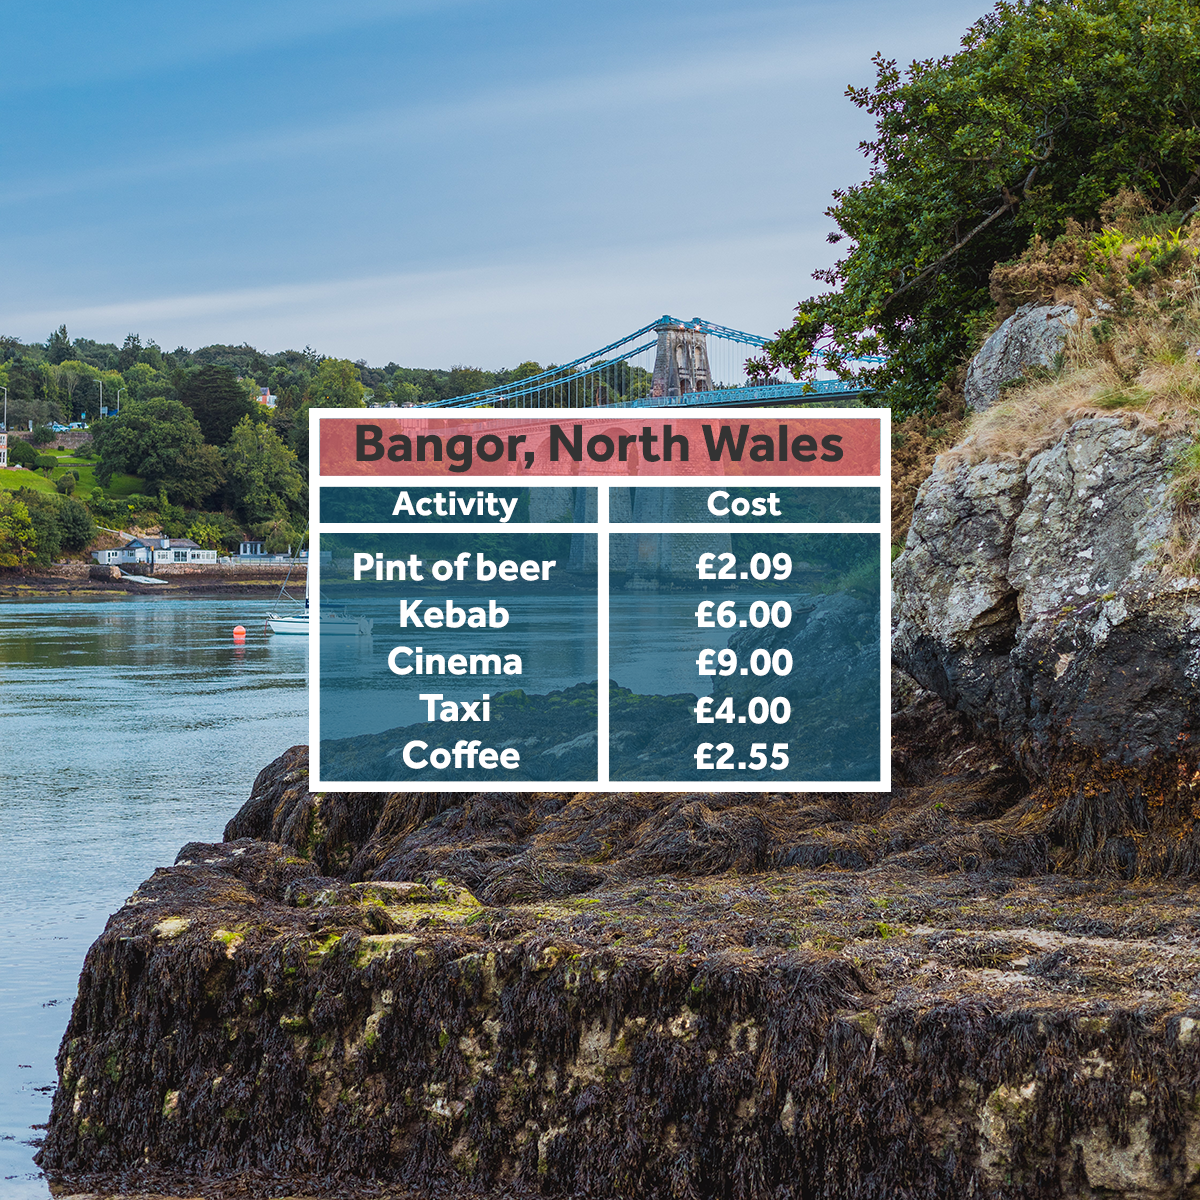 Bangor, North Wales - affordable student areas